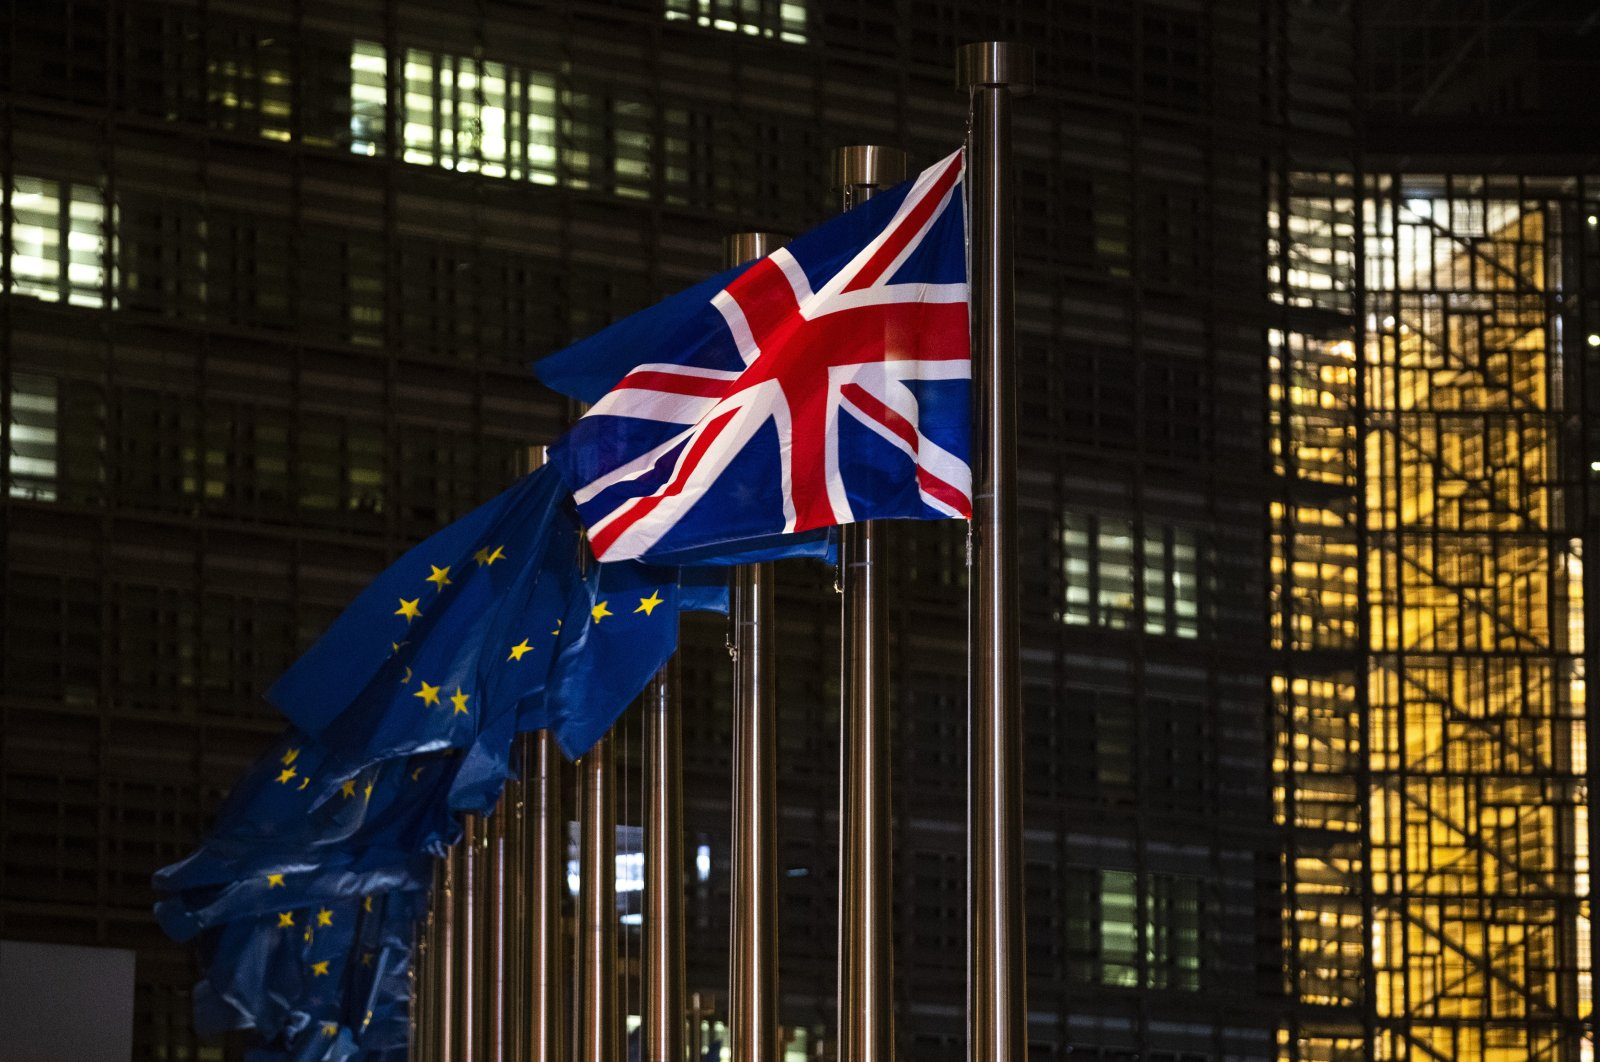 Flags of Britain and the European Union flap in the wind prior a meeting between European Commission President Ursula von der Leyen and British Prime Minister Boris Johnson at EU headquarters in Brussels, Belgium, Dec. 9, 2020. (AP Photo)